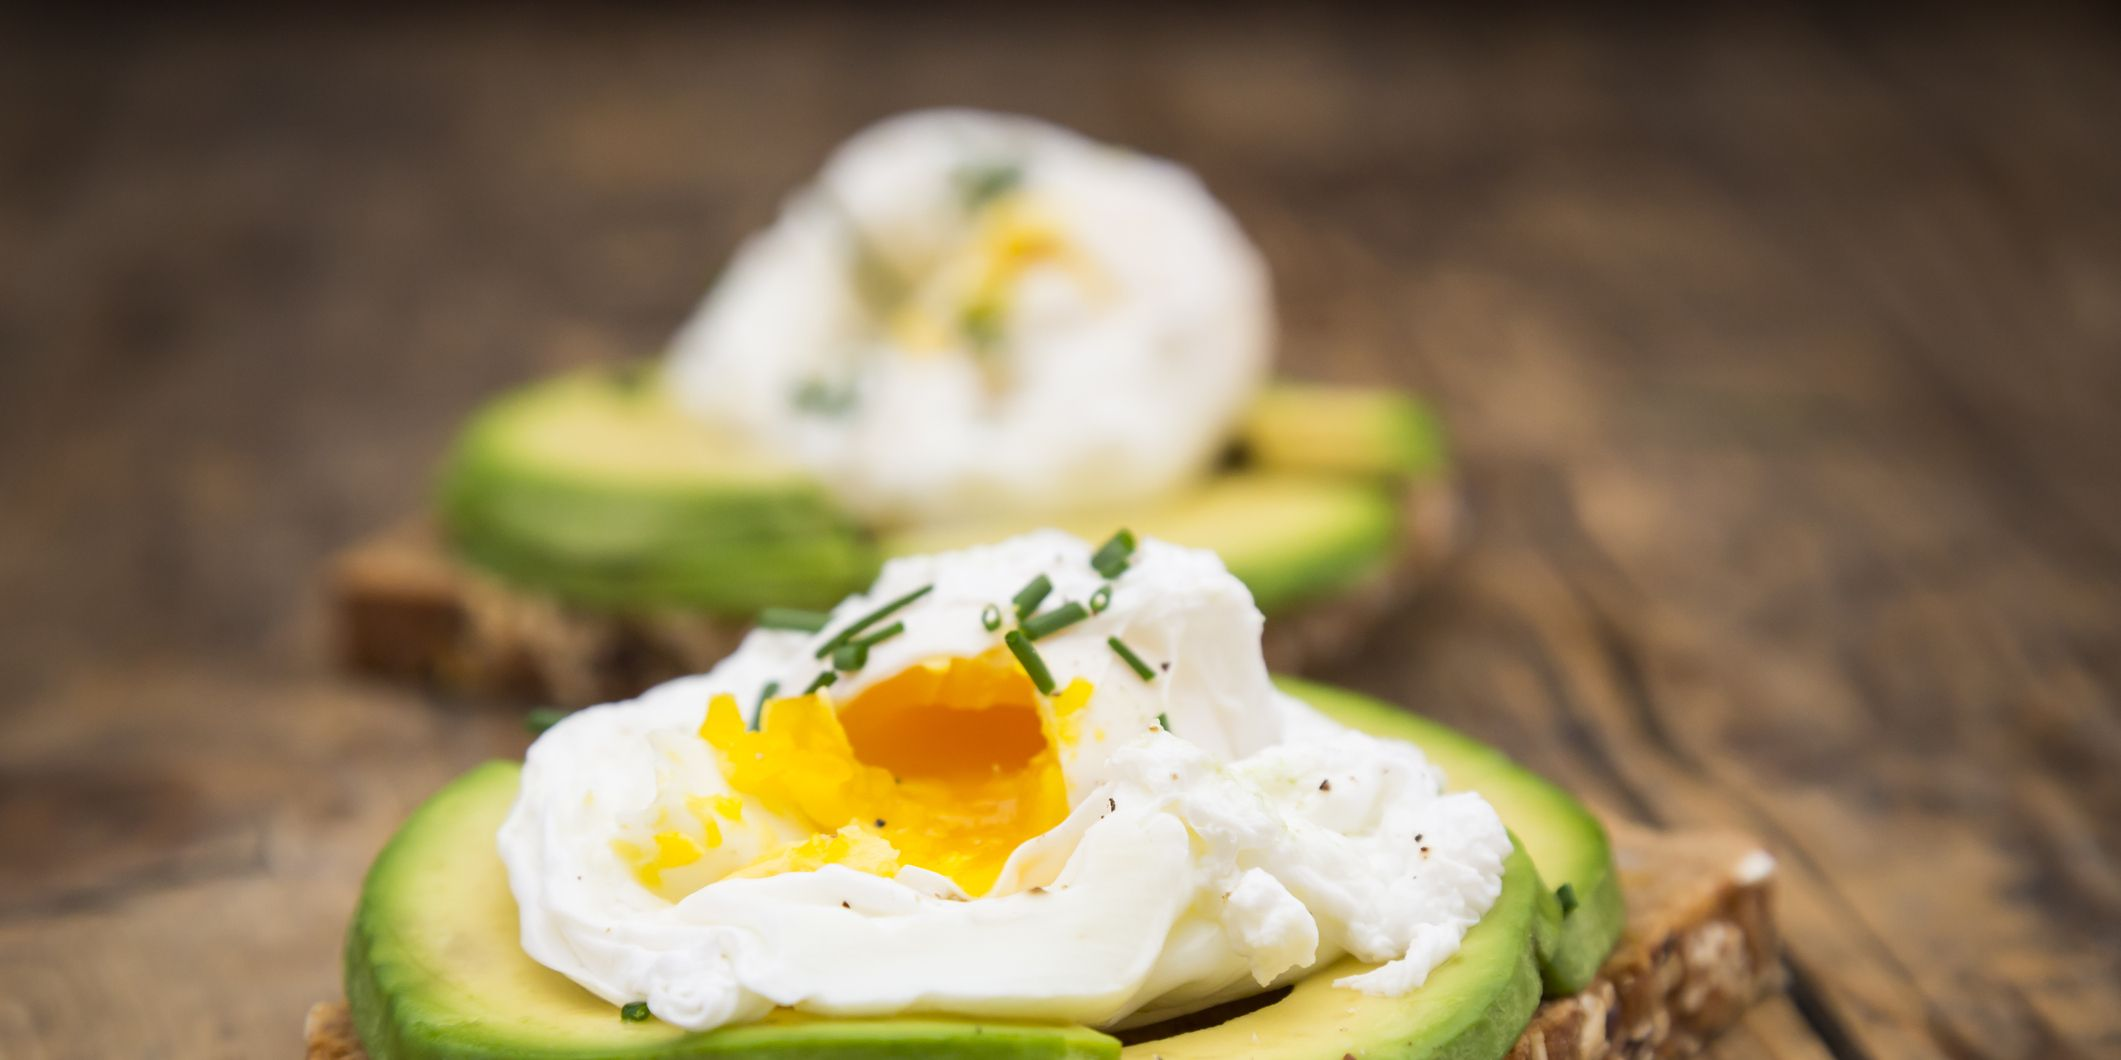 Wholemeal bread slices with sliced avocado and poached eggs on wood